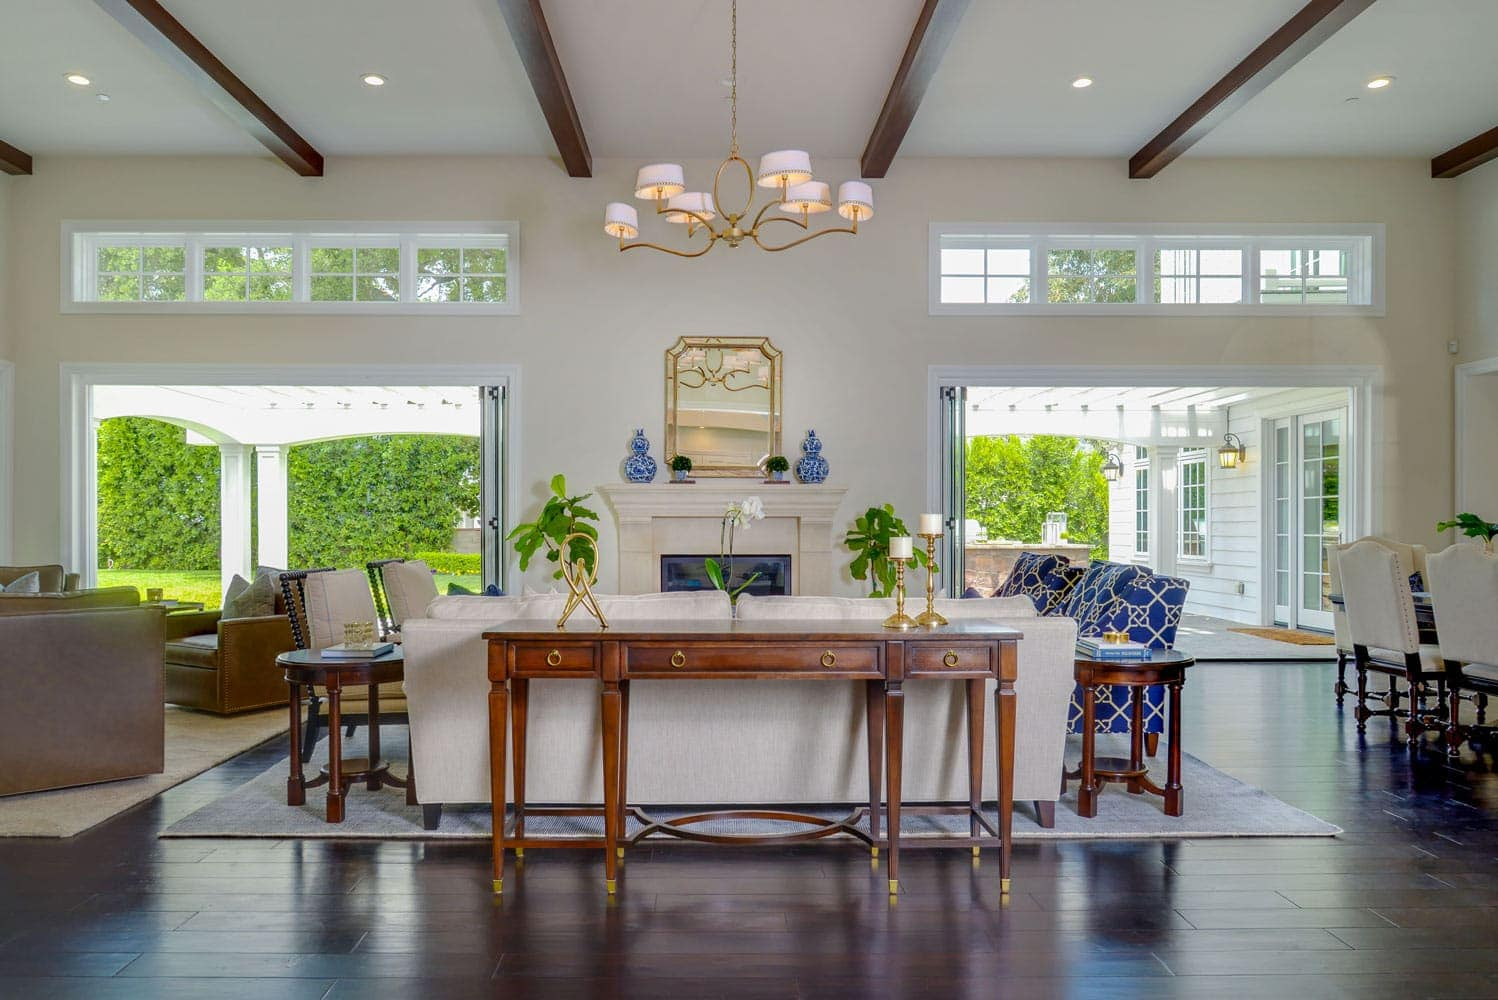 Berkshire House Interior Design La Cañada Flintridge